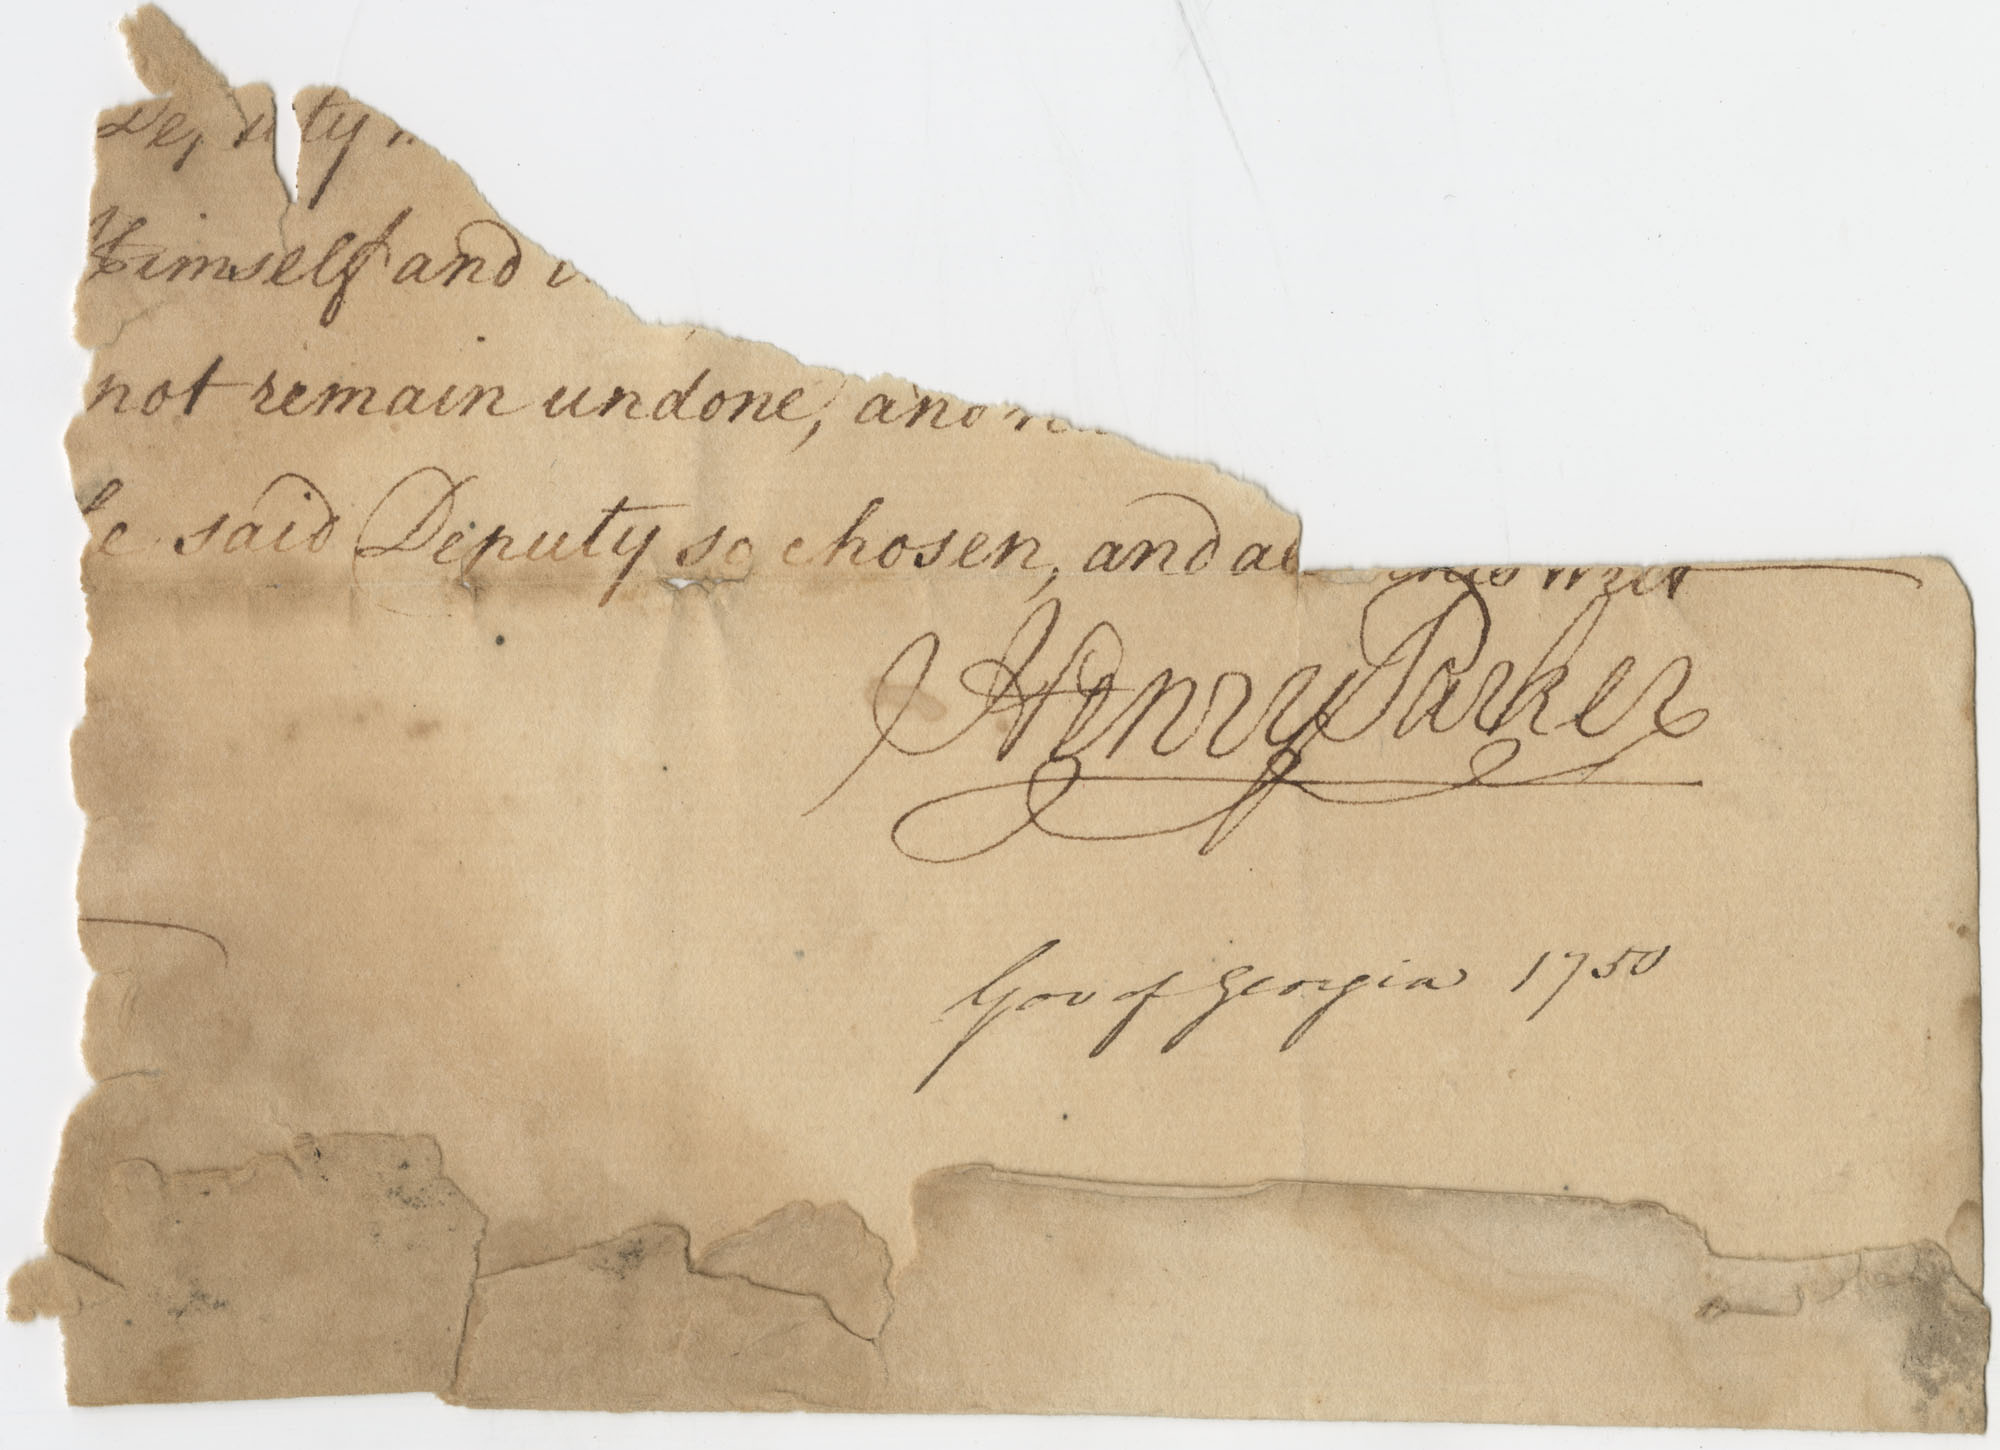 Thomas S. Grimke Autograph Collection, autograph of Henry Parker, Governor of Georgia, 1750